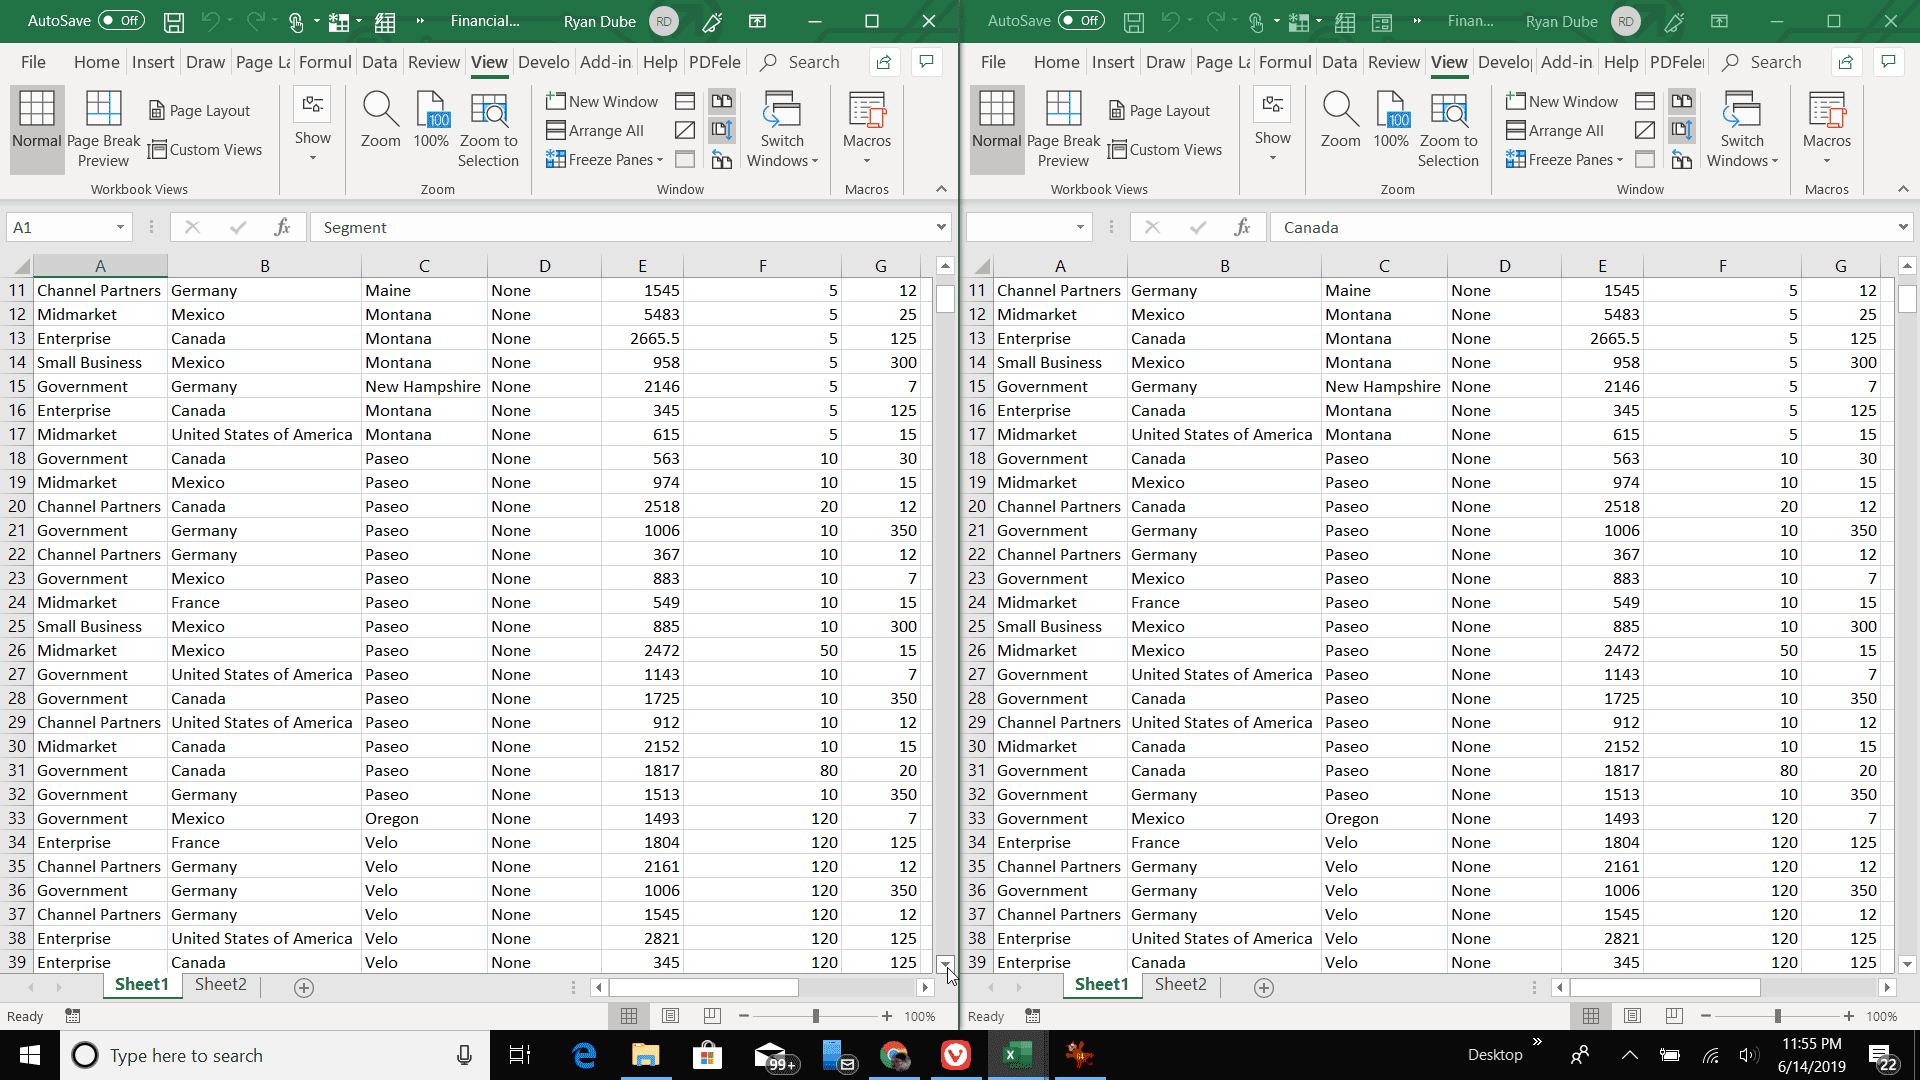 Screenshot of side by side view in Excel